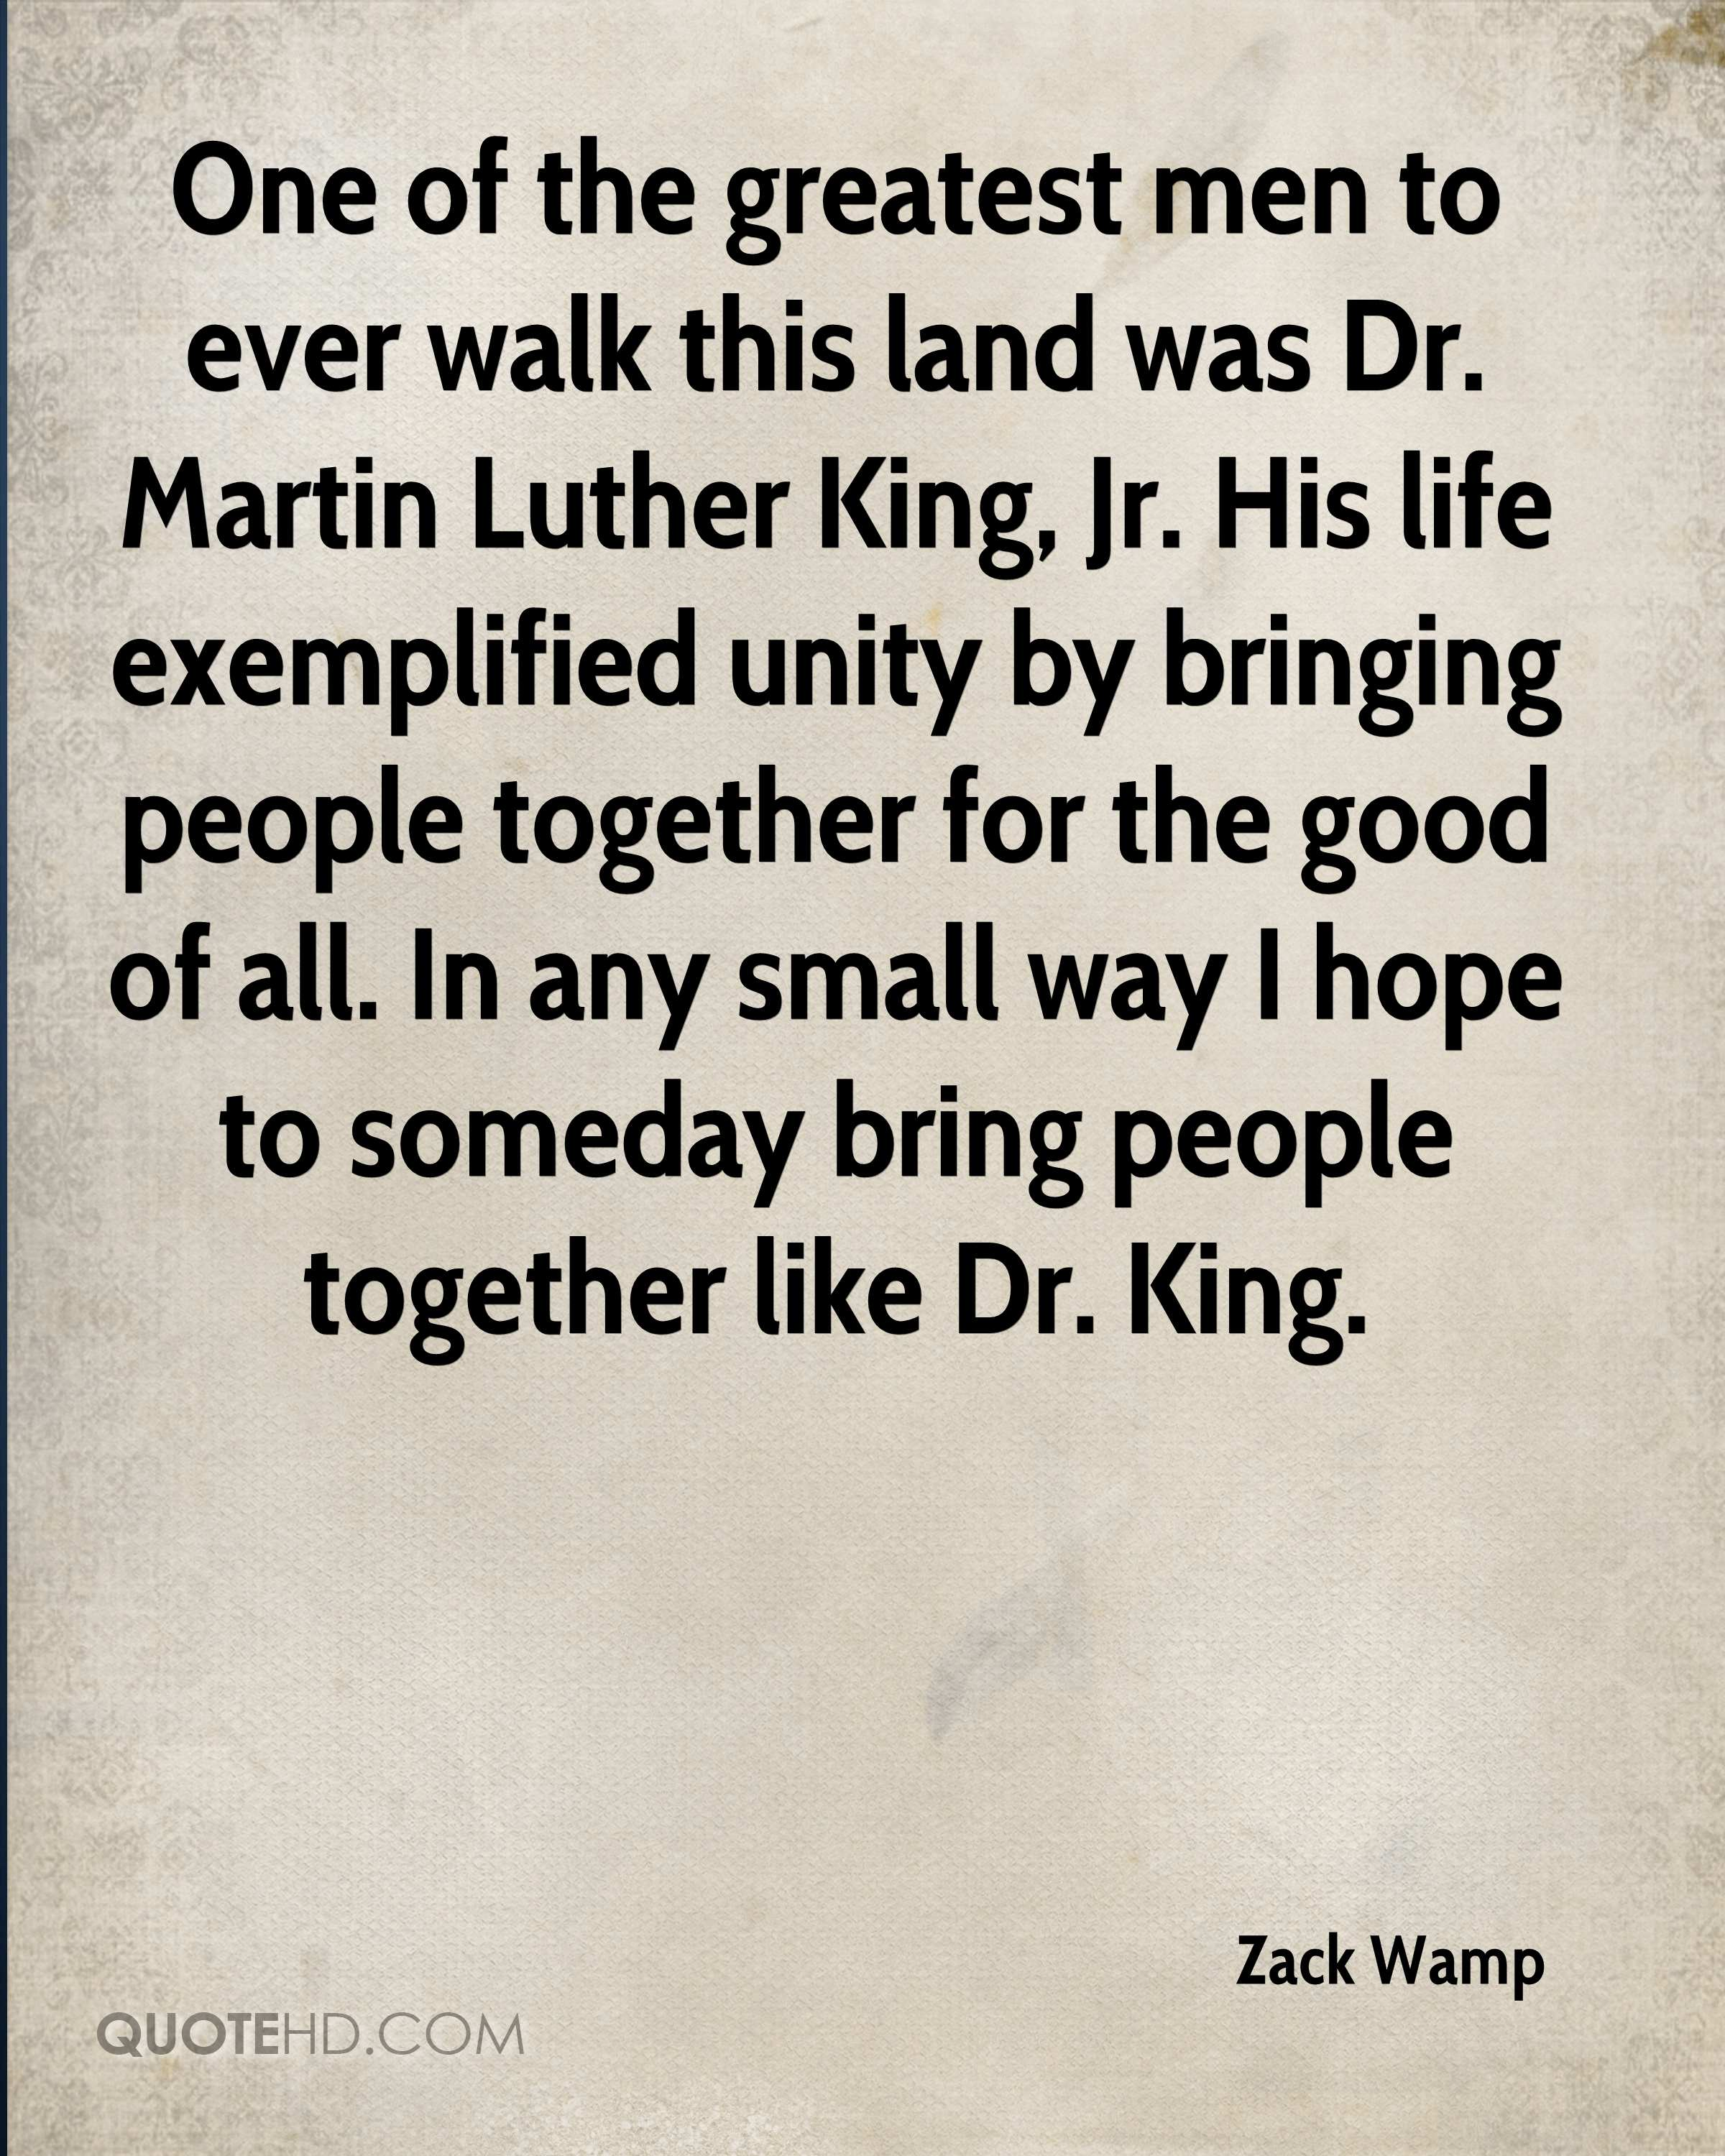 One of the greatest men to ever walk this land was Dr. Martin Luther King, Jr. His life exemplified unity by bringing people together for the good of all. In any small way I hope to someday bring people together like Dr. King.